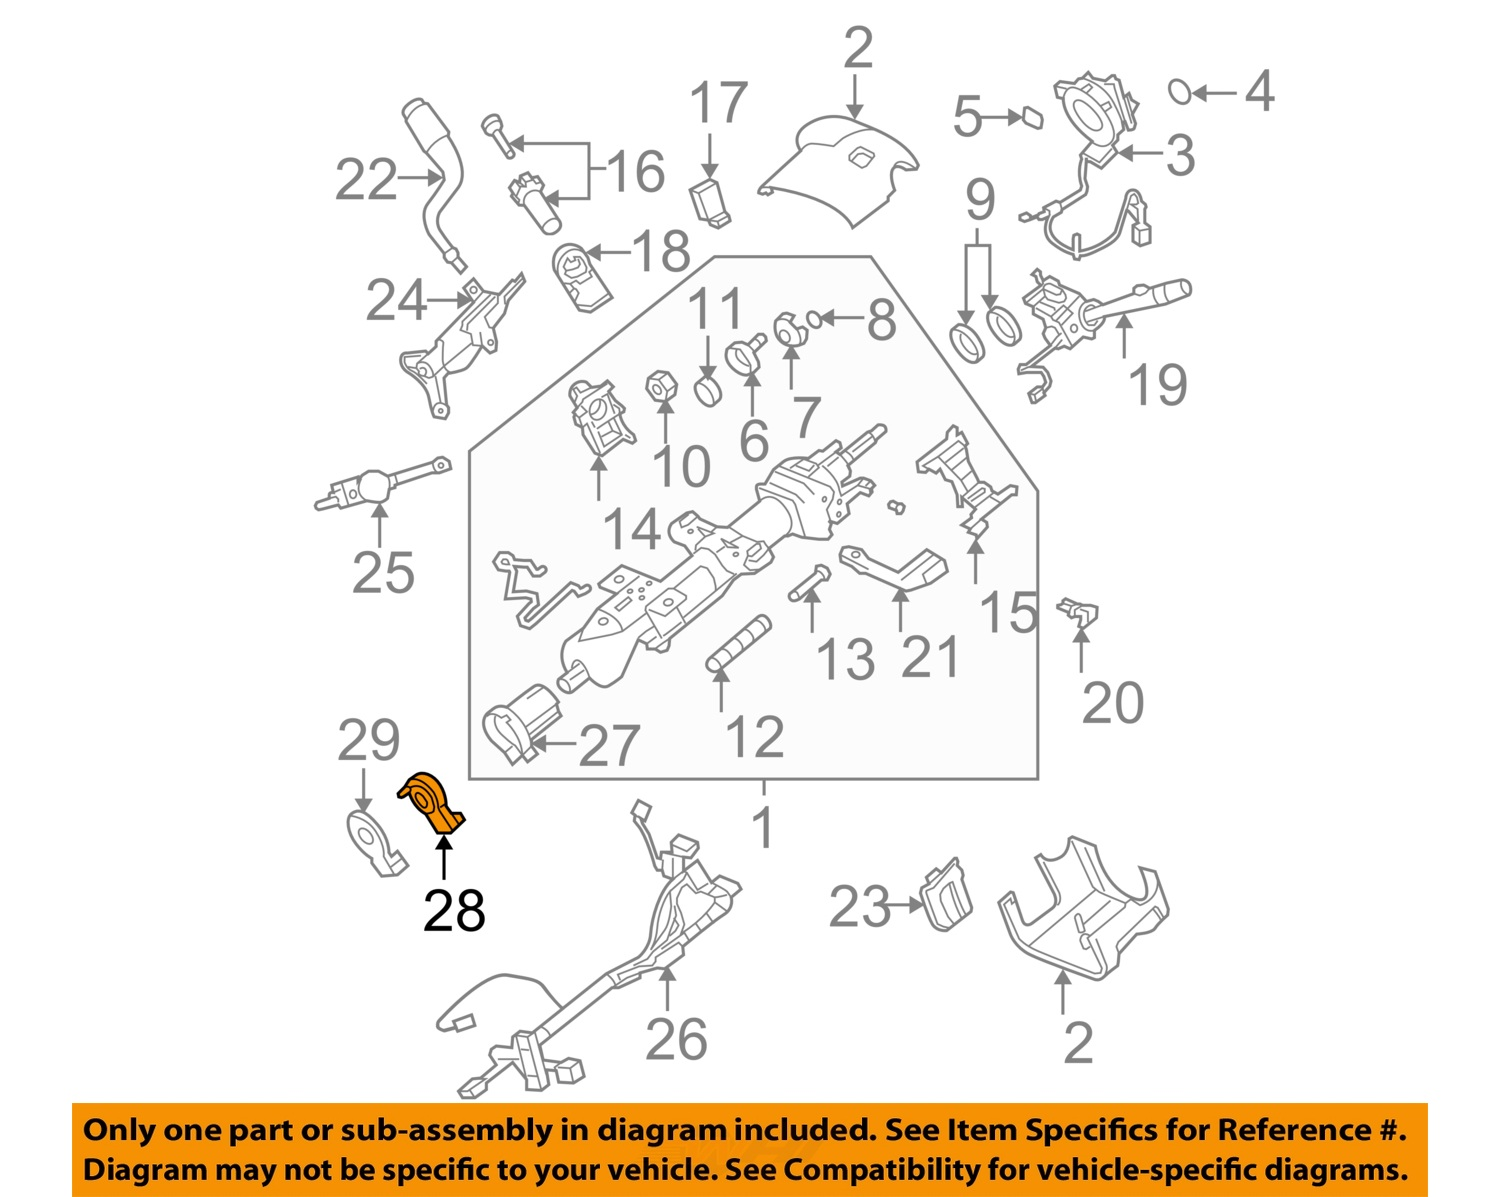 gm oem steering column angle position sensor 20910871 ebay. Black Bedroom Furniture Sets. Home Design Ideas